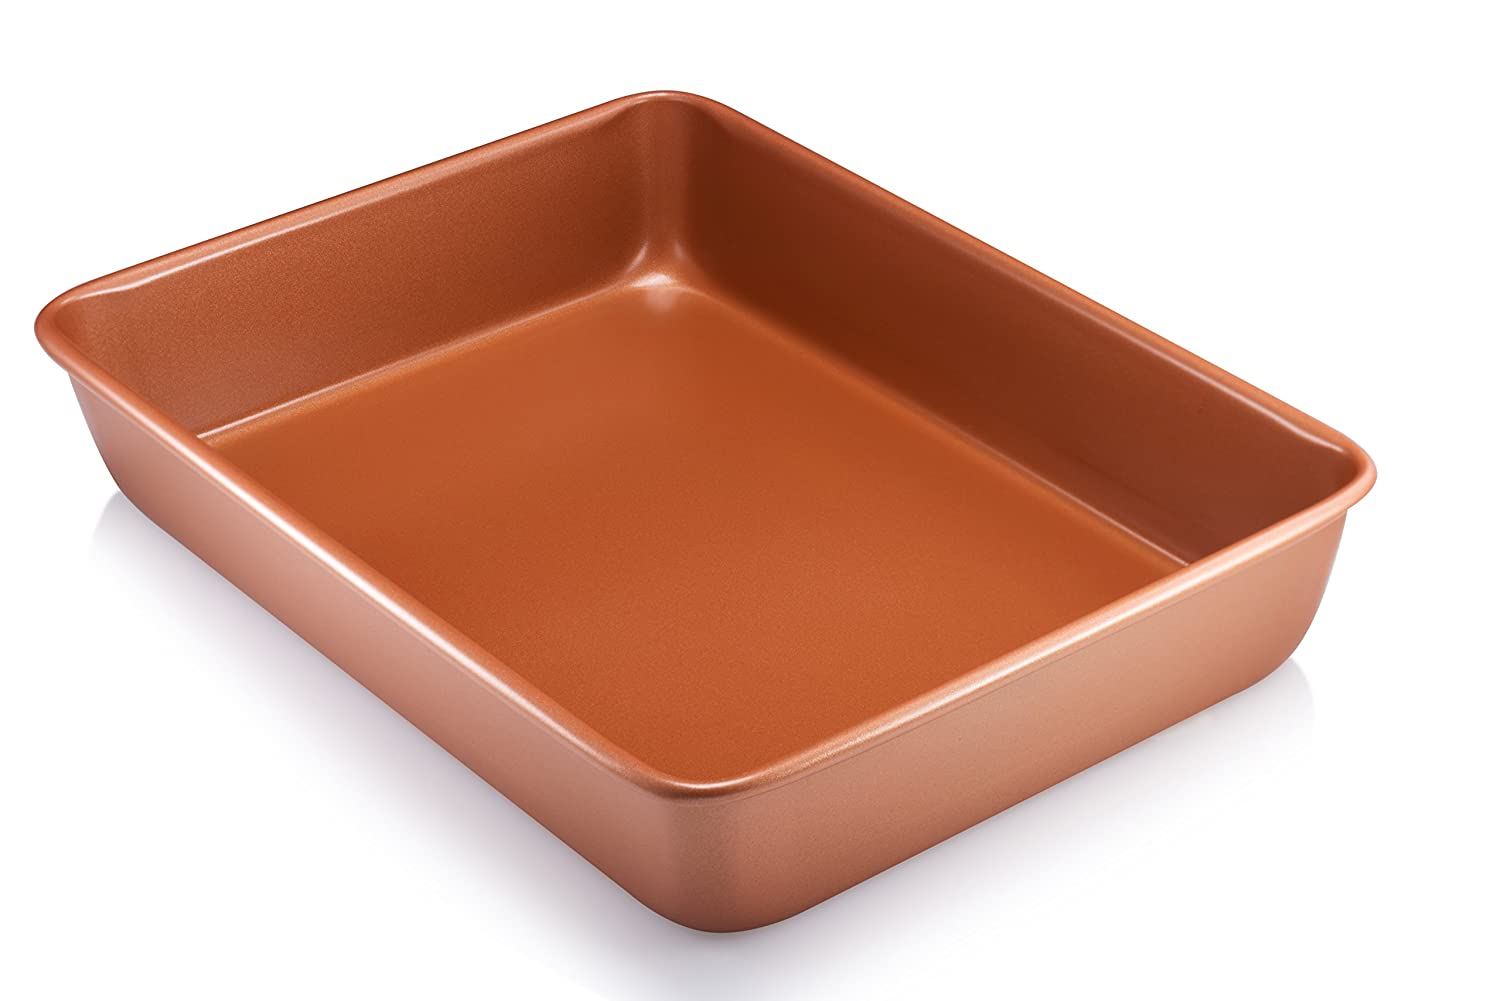 Gotham Steel 1359 Large Baking Pan, Rectangle Brownish